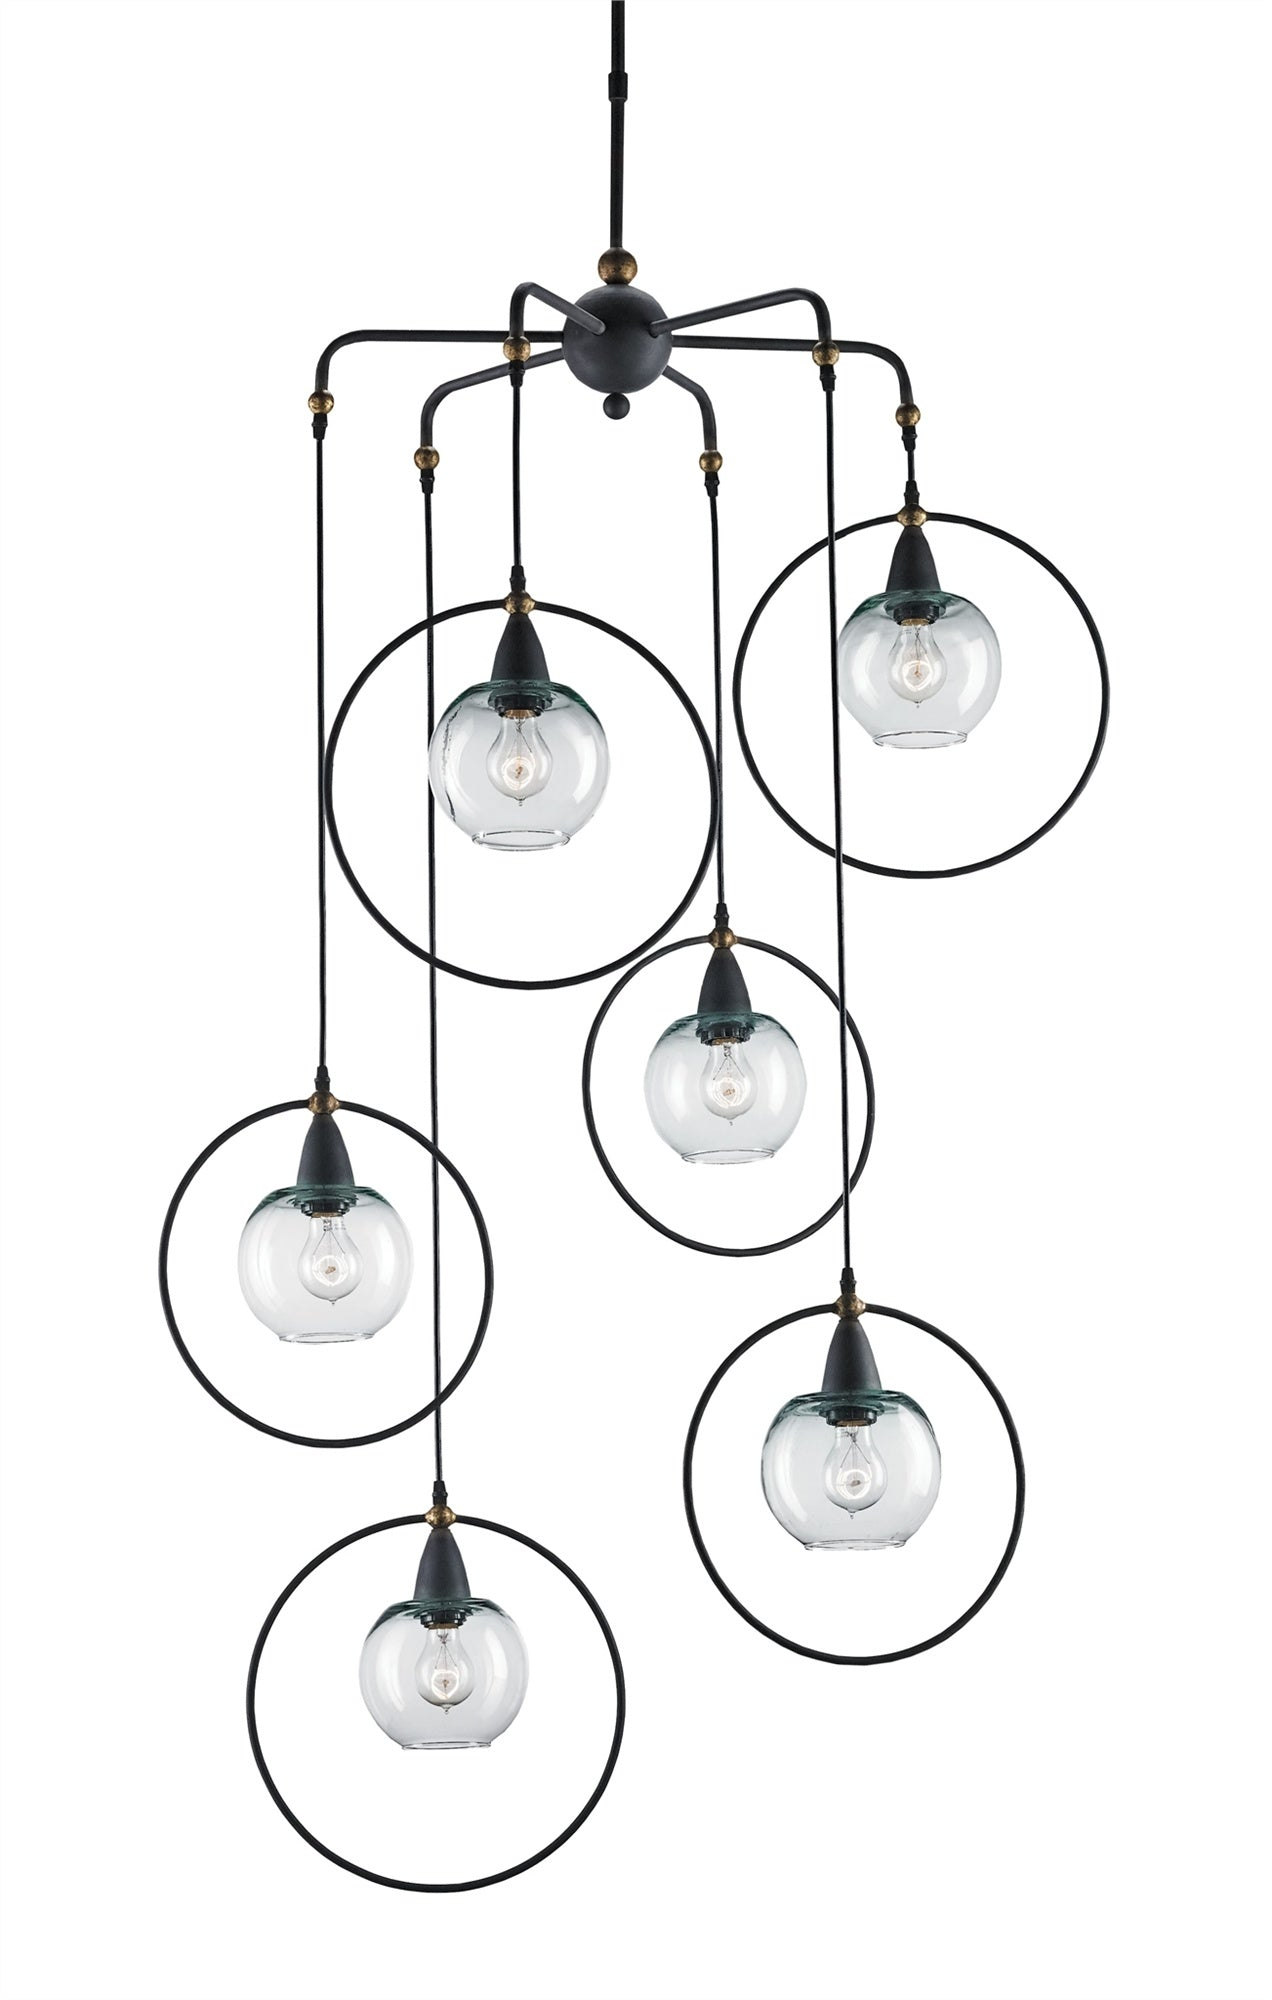 Currey and Company Moorsgate Multi Pendant 9869 - LOVECUP